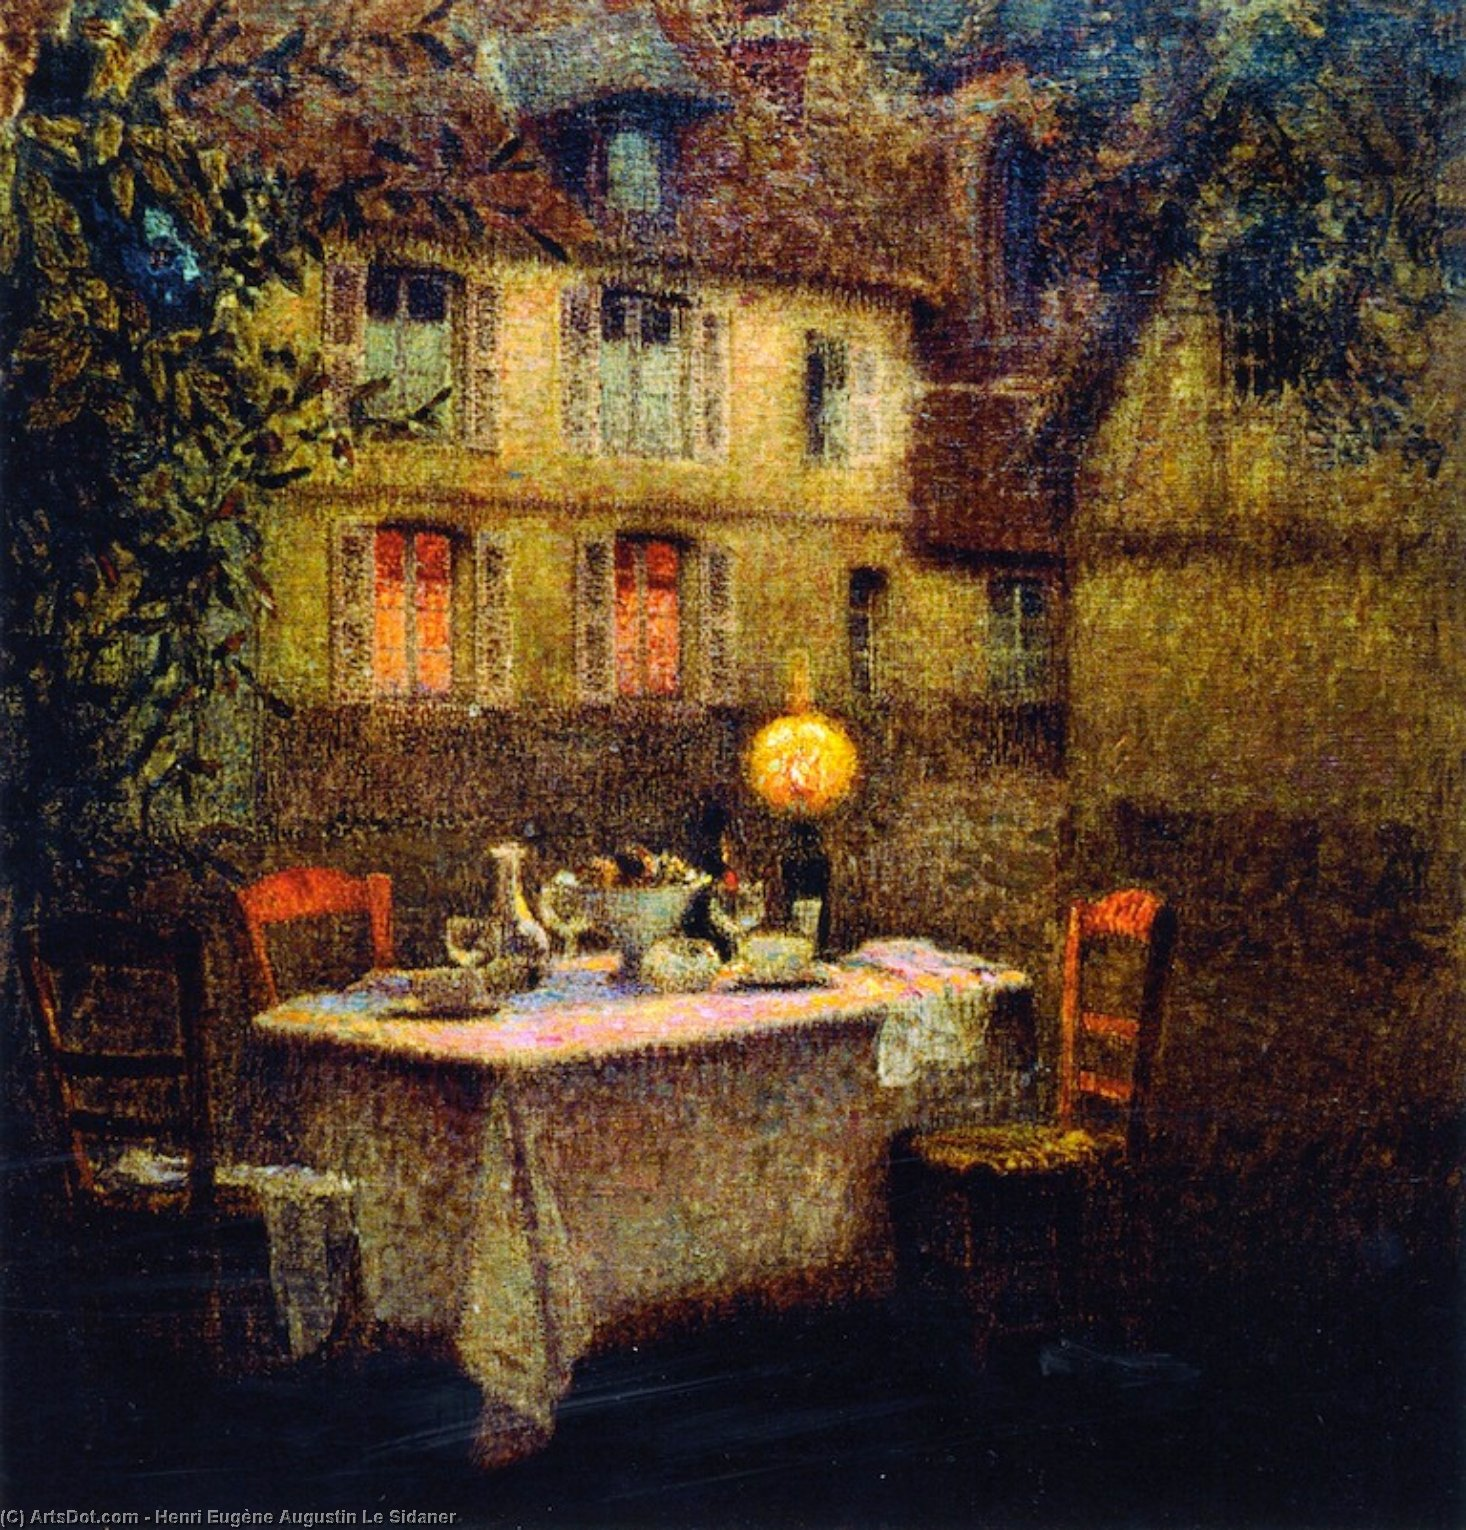 The Table, Gerberoy, Oil On Canvas by Henri Eugène Augustin Le Sidaner (1862-1939, Mauritius)